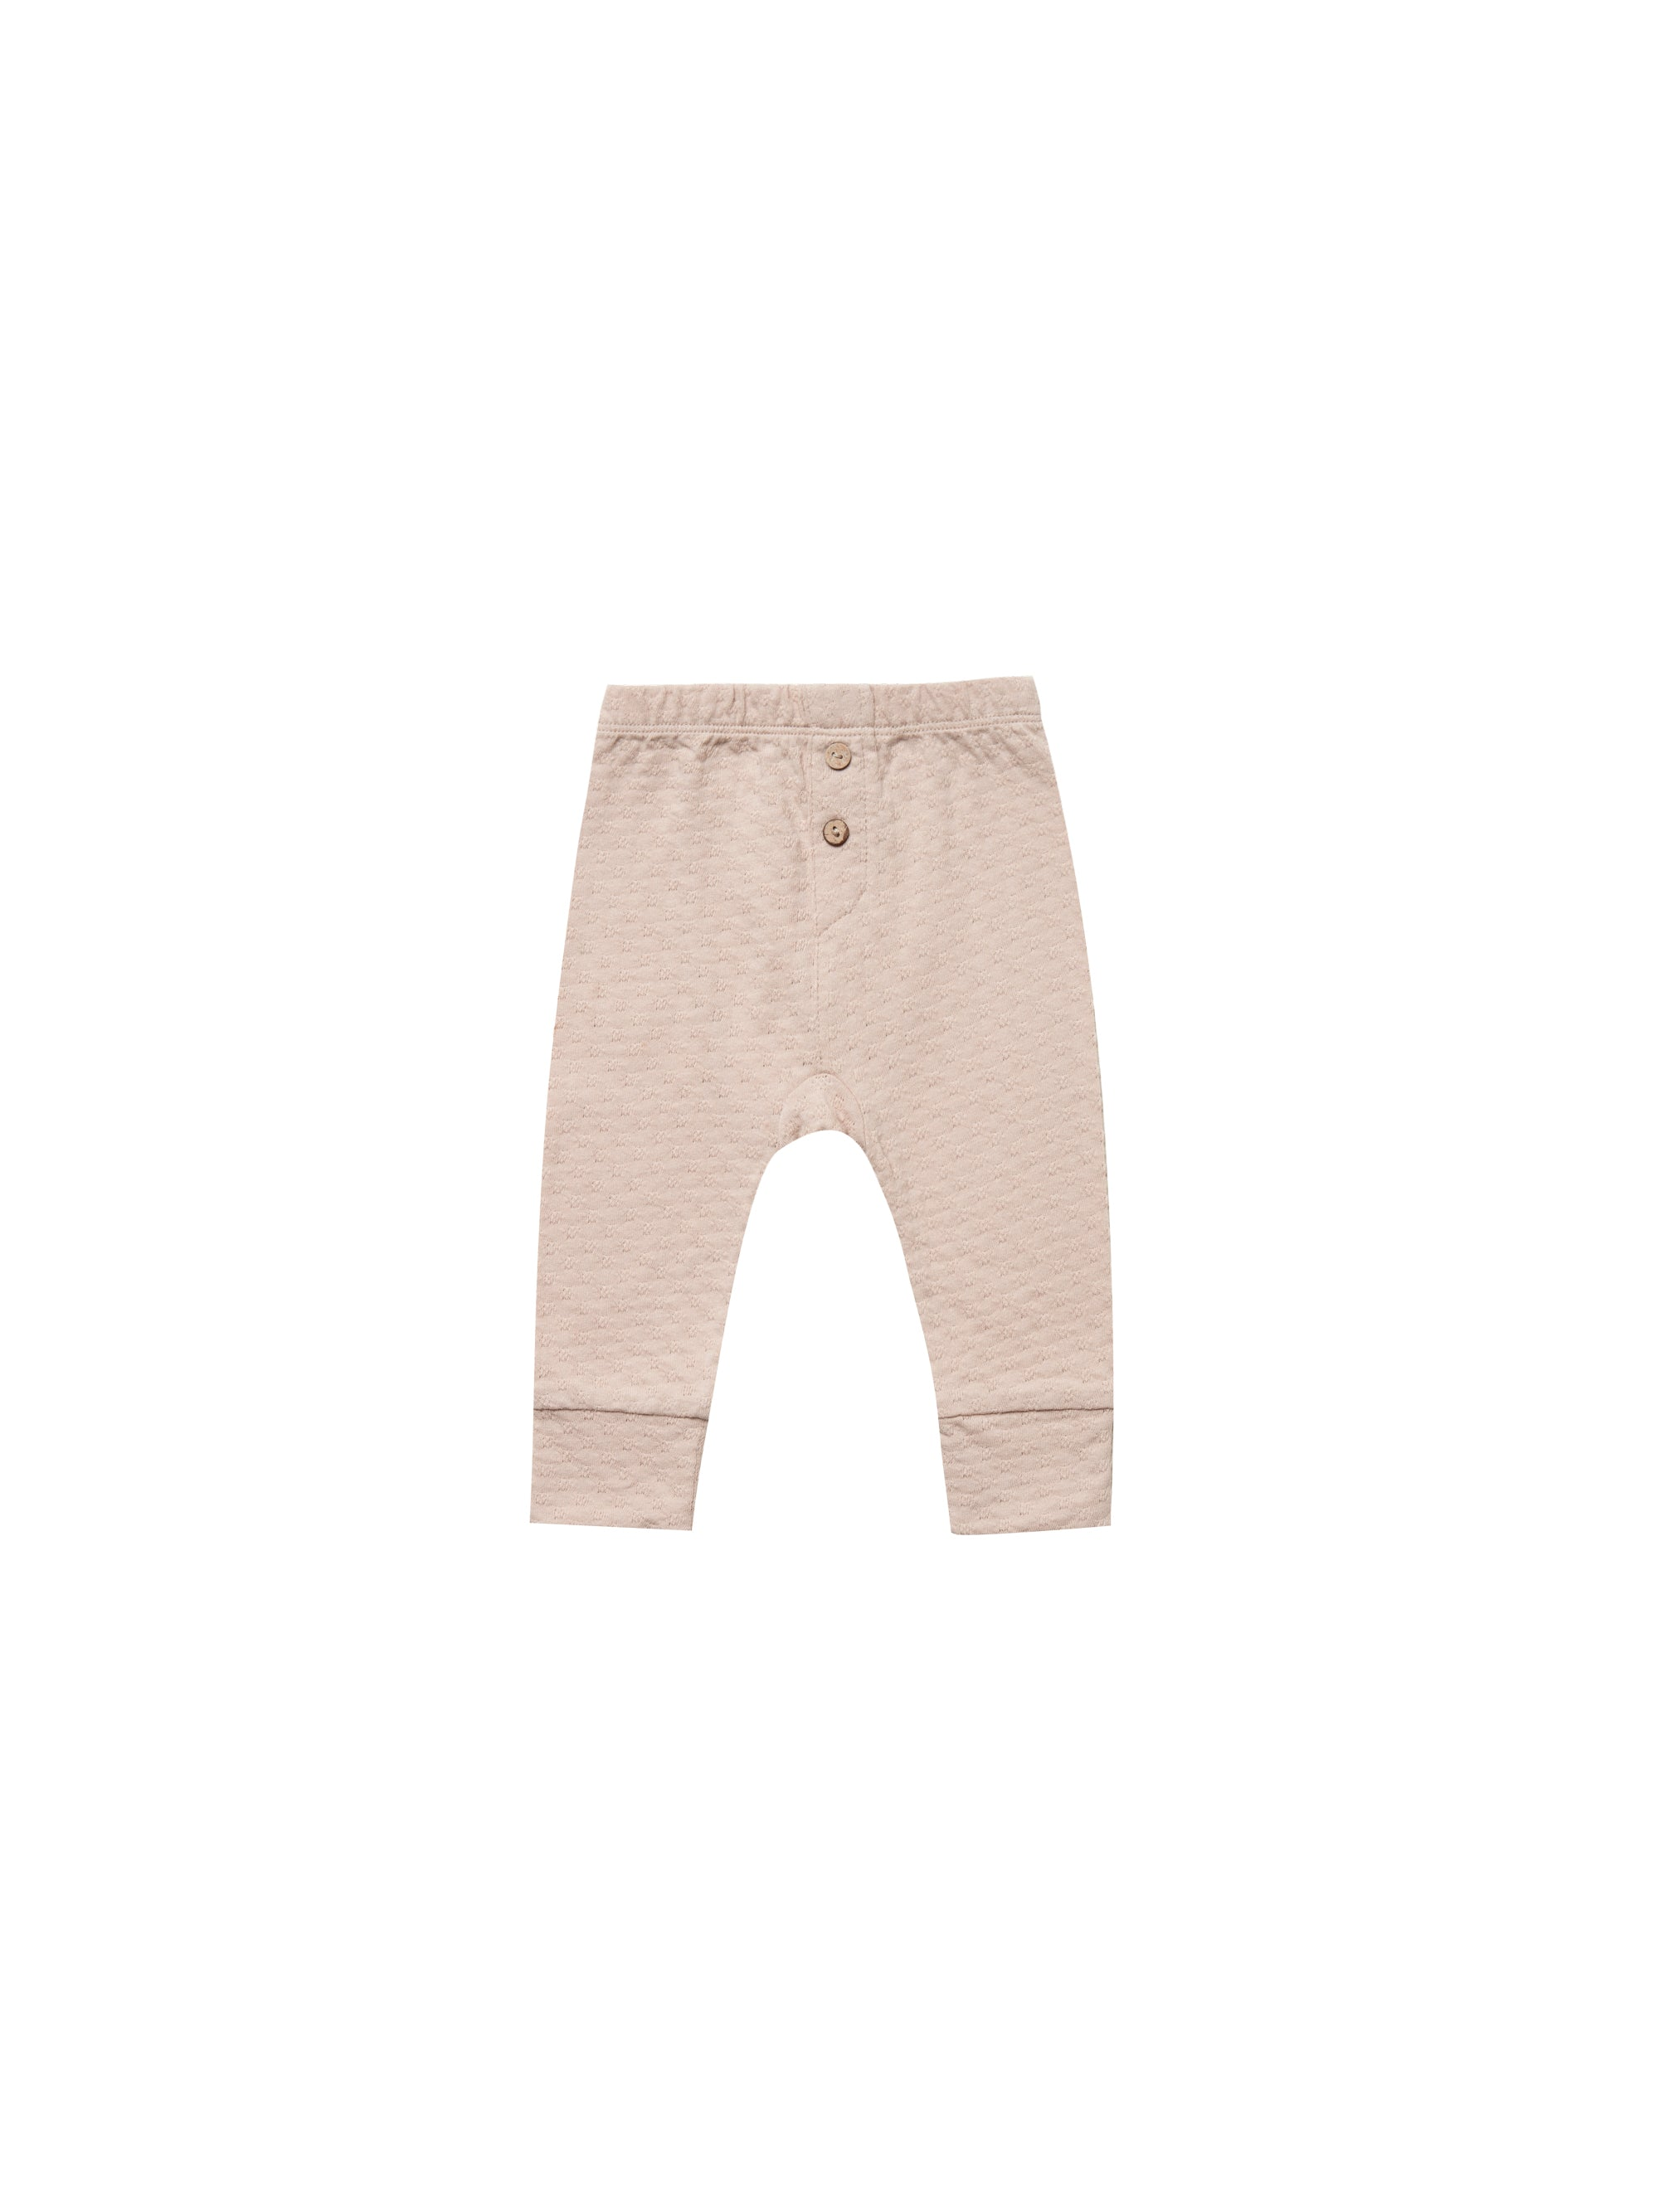 Quincy Mae - Pointelle Pajama Pant (Rose)